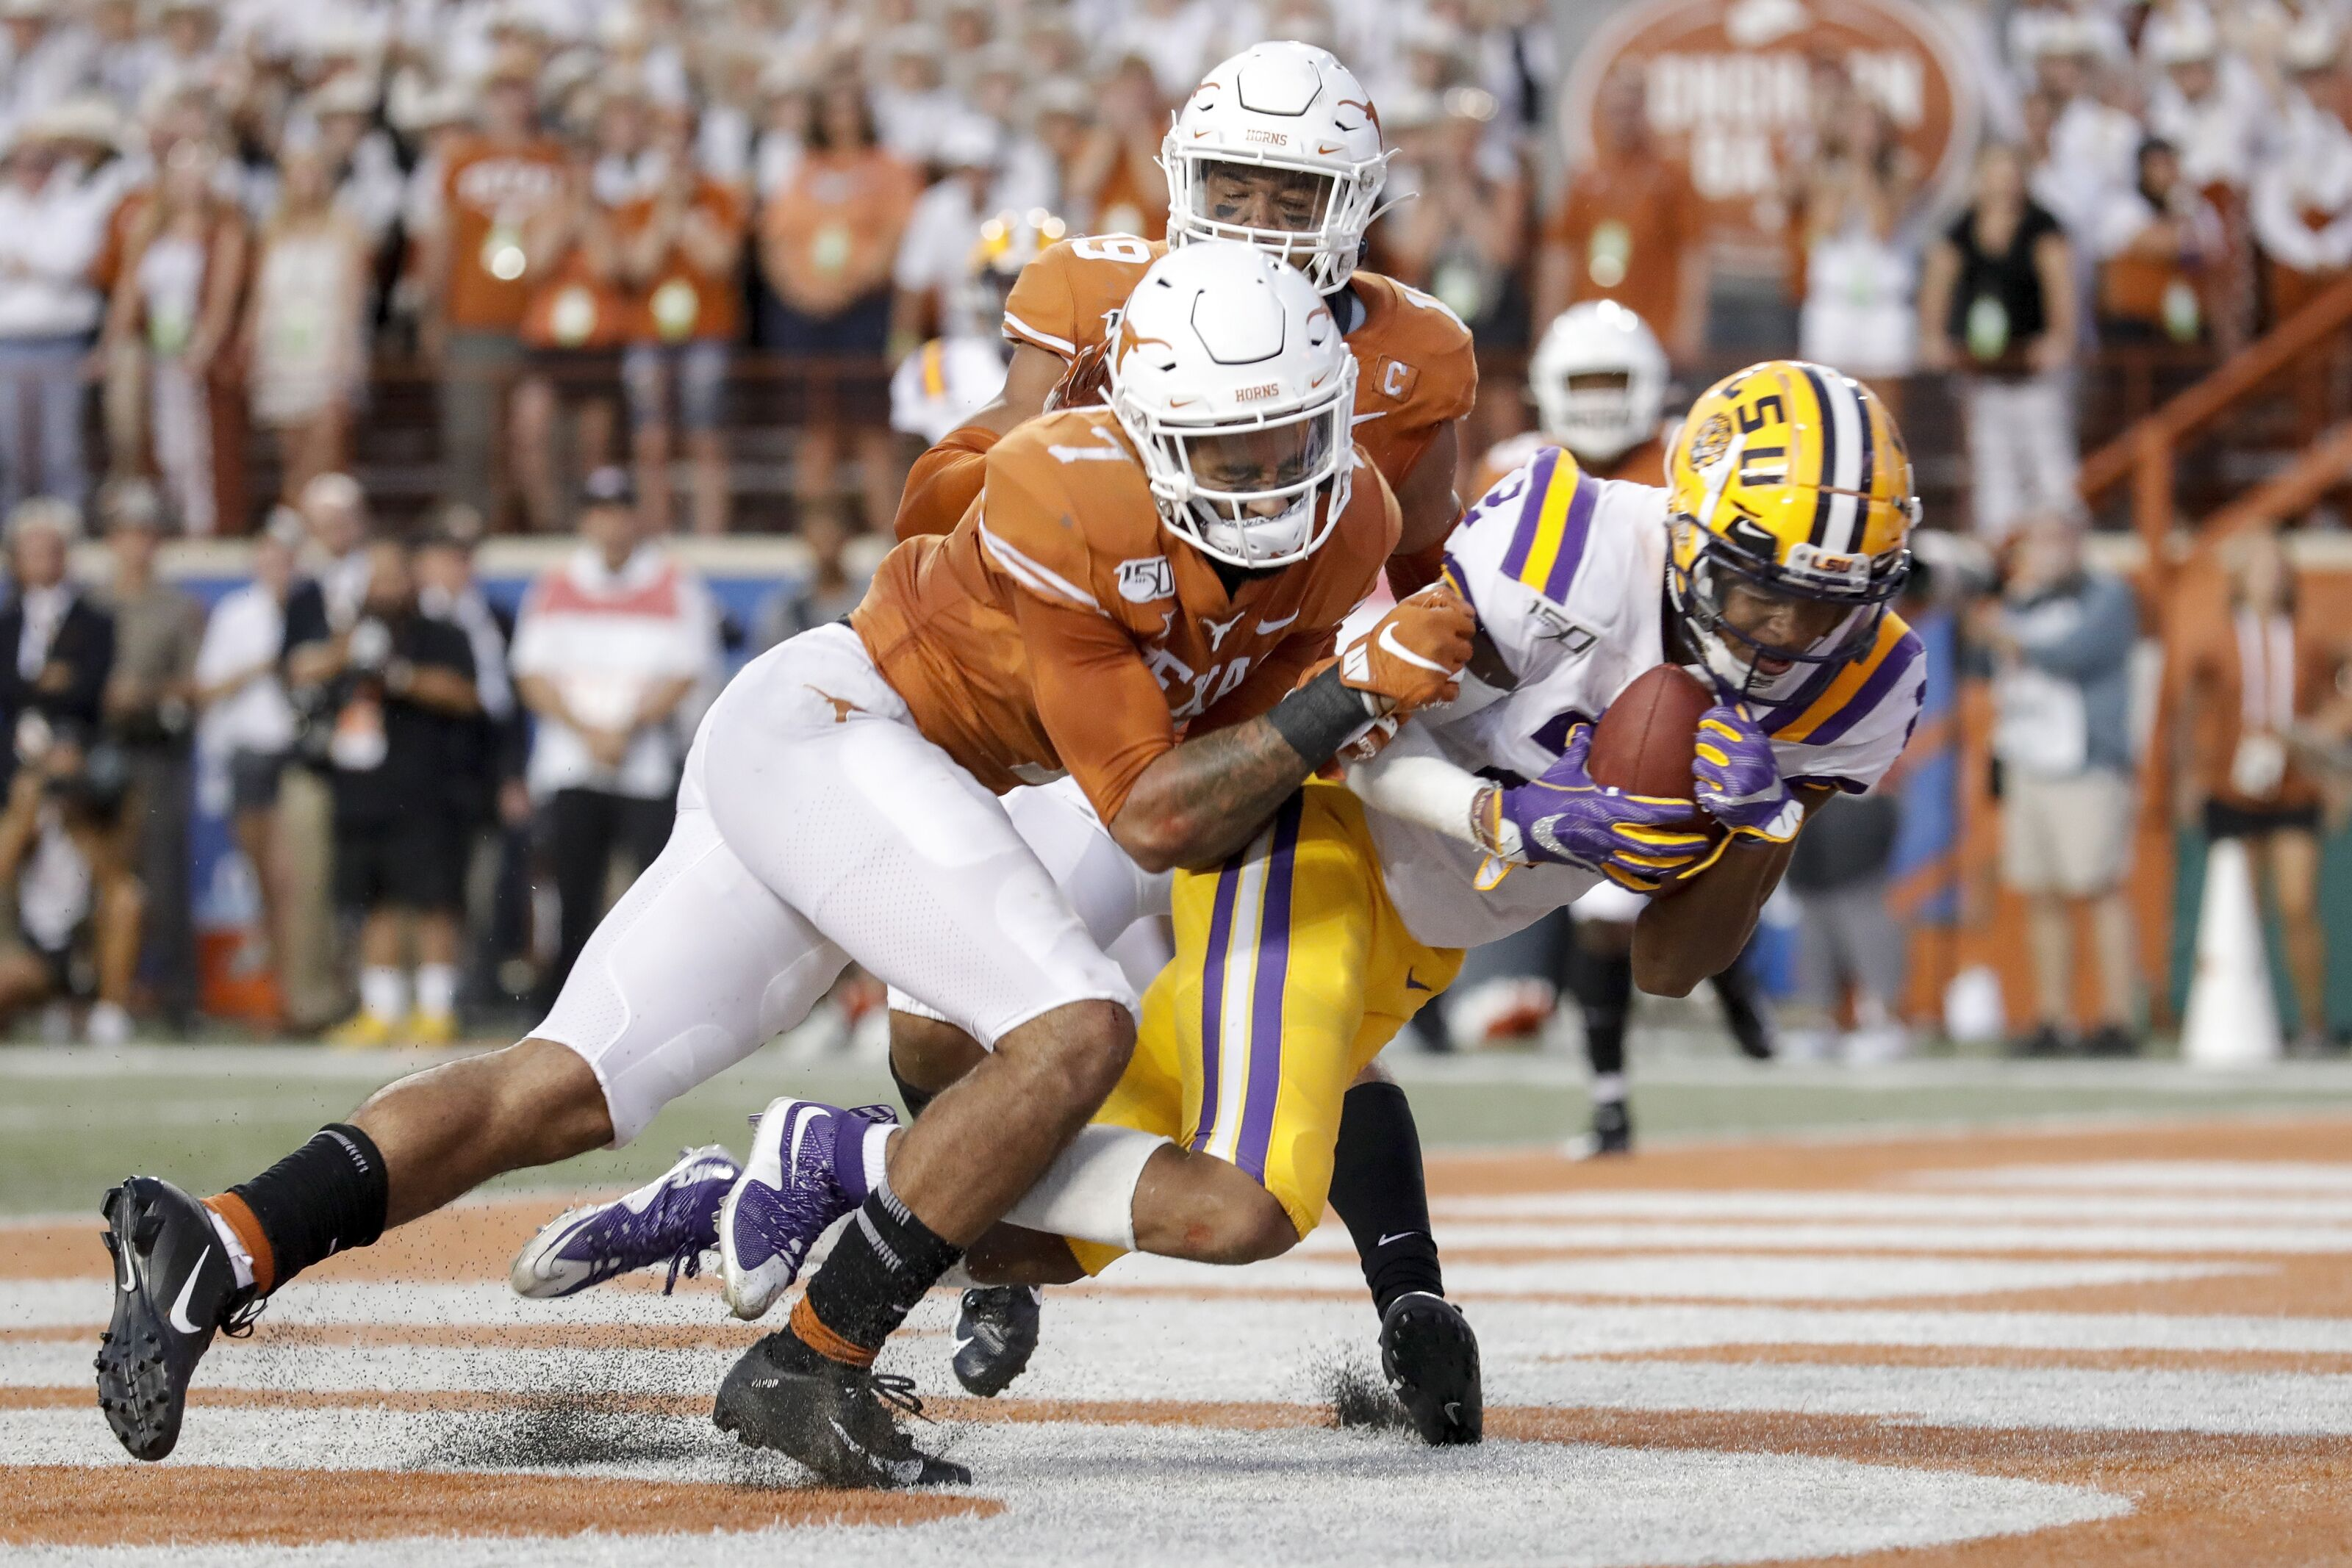 Texas Football: Longhorns injury update after Red River loss